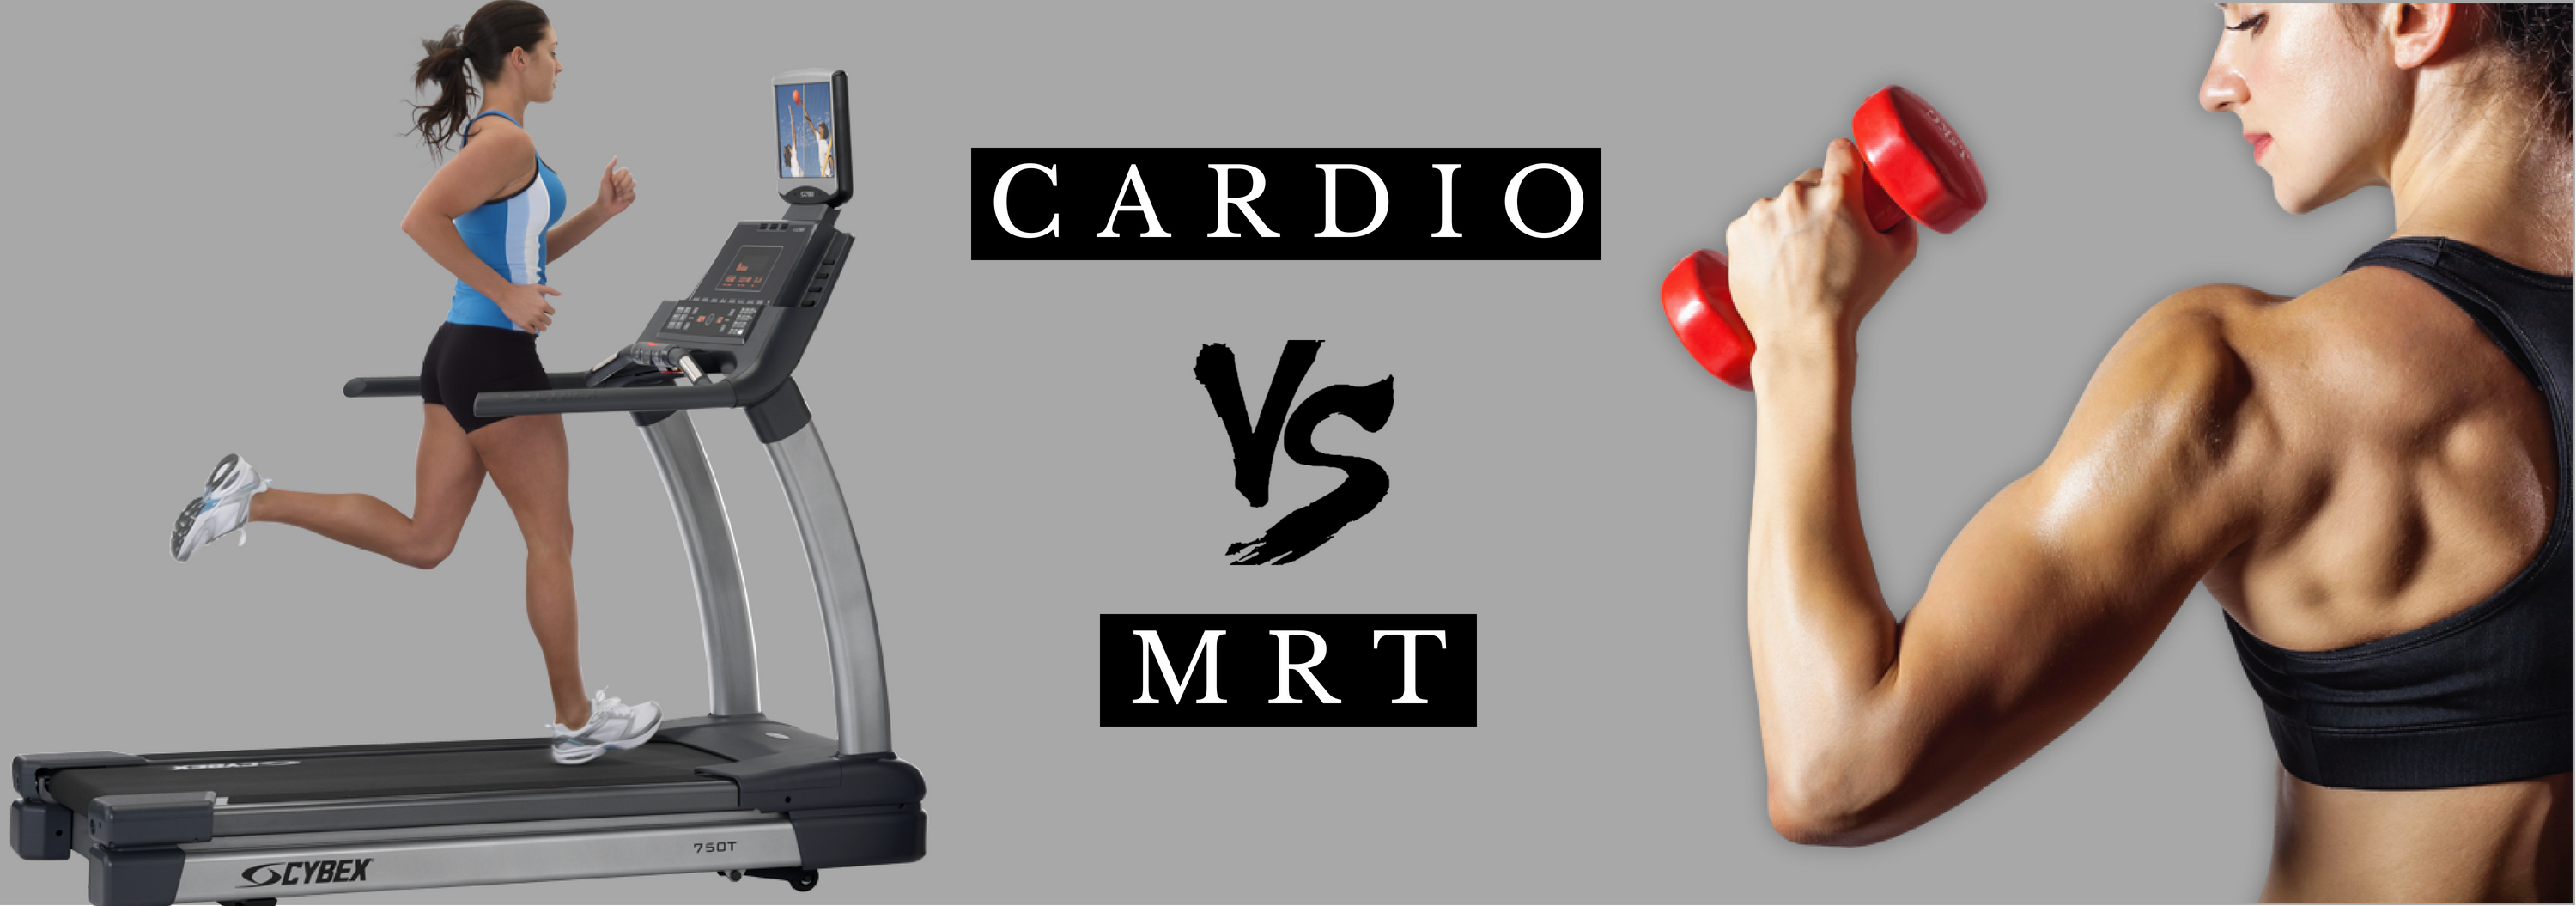 Cardio or MRT: Which workout burns more fat?